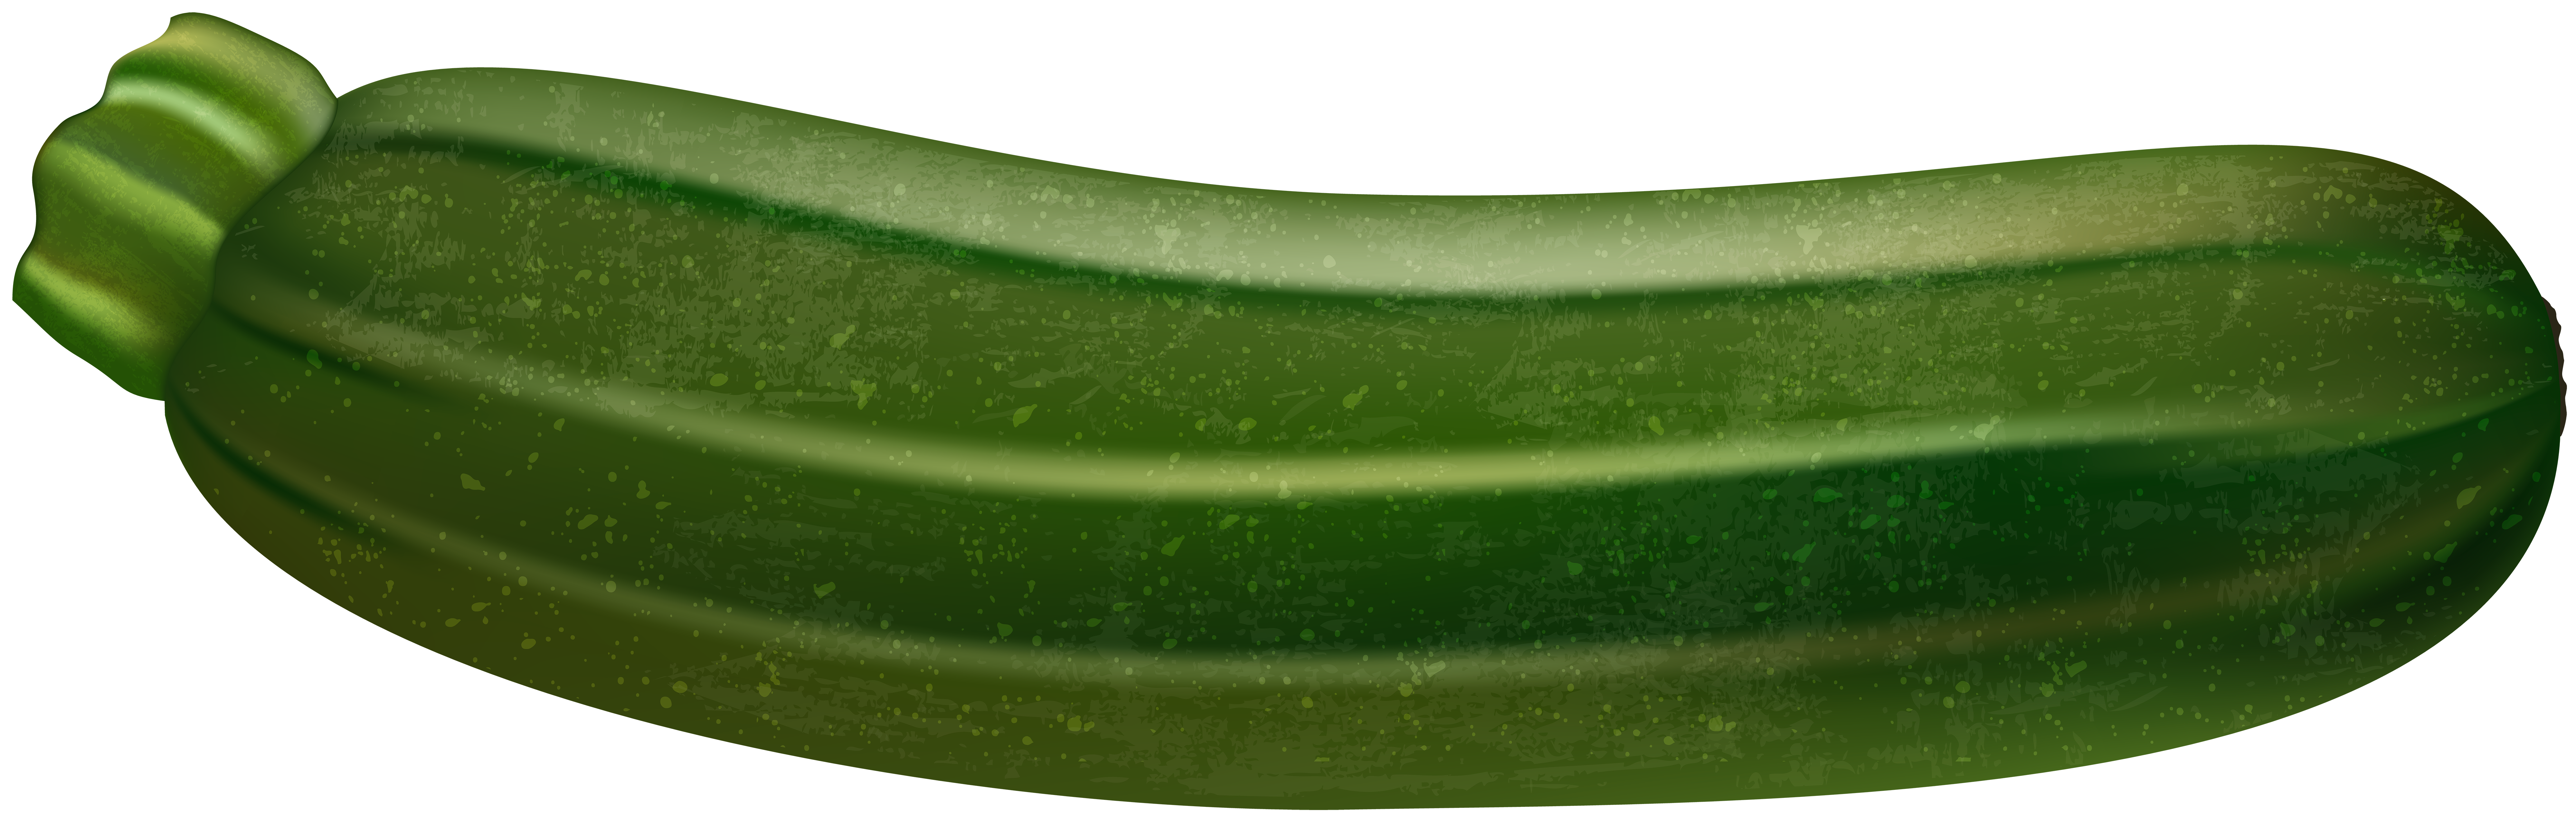 Zucchini clipart png free Zucchini Transparent PNG Clip Art Image | Gallery Yopriceville ... png free